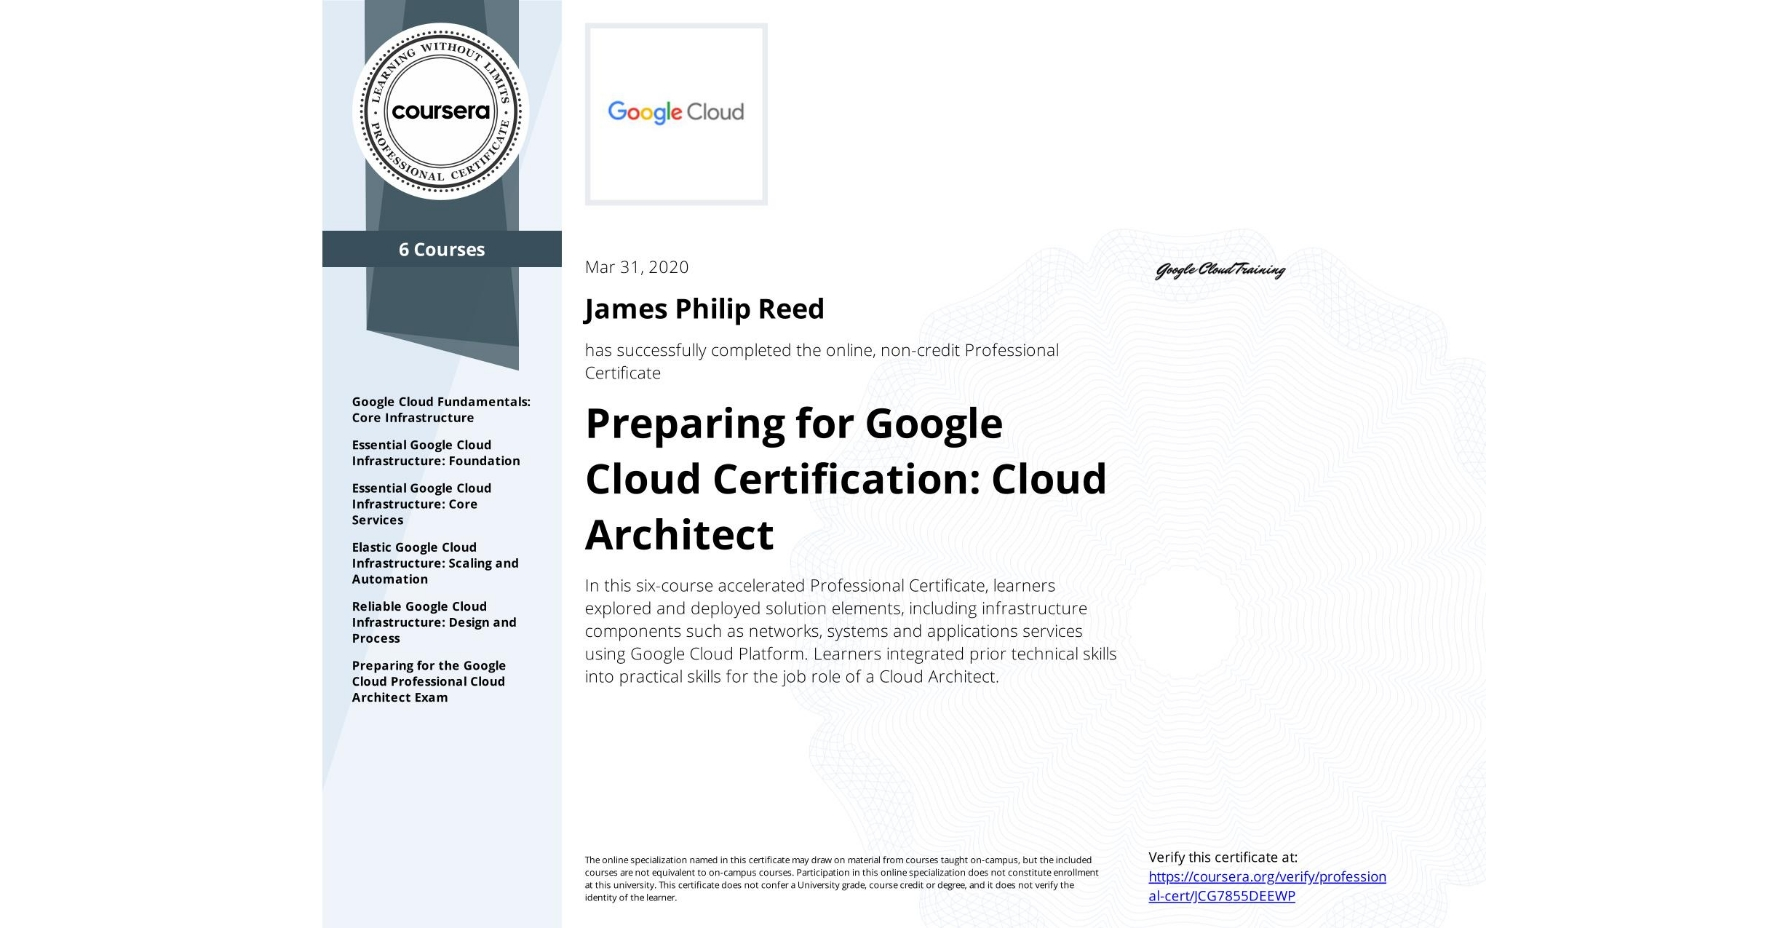 View certificate for James Philip Reed, Preparing for Google Cloud Certification: Cloud Architect, offered through Coursera. In this six-course accelerated Professional Certificate, learners explored and deployed solution elements, including infrastructure components such as networks, systems and applications services using Google Cloud Platform. Learners integrated prior technical skills into practical skills for the job role of a Cloud Architect.